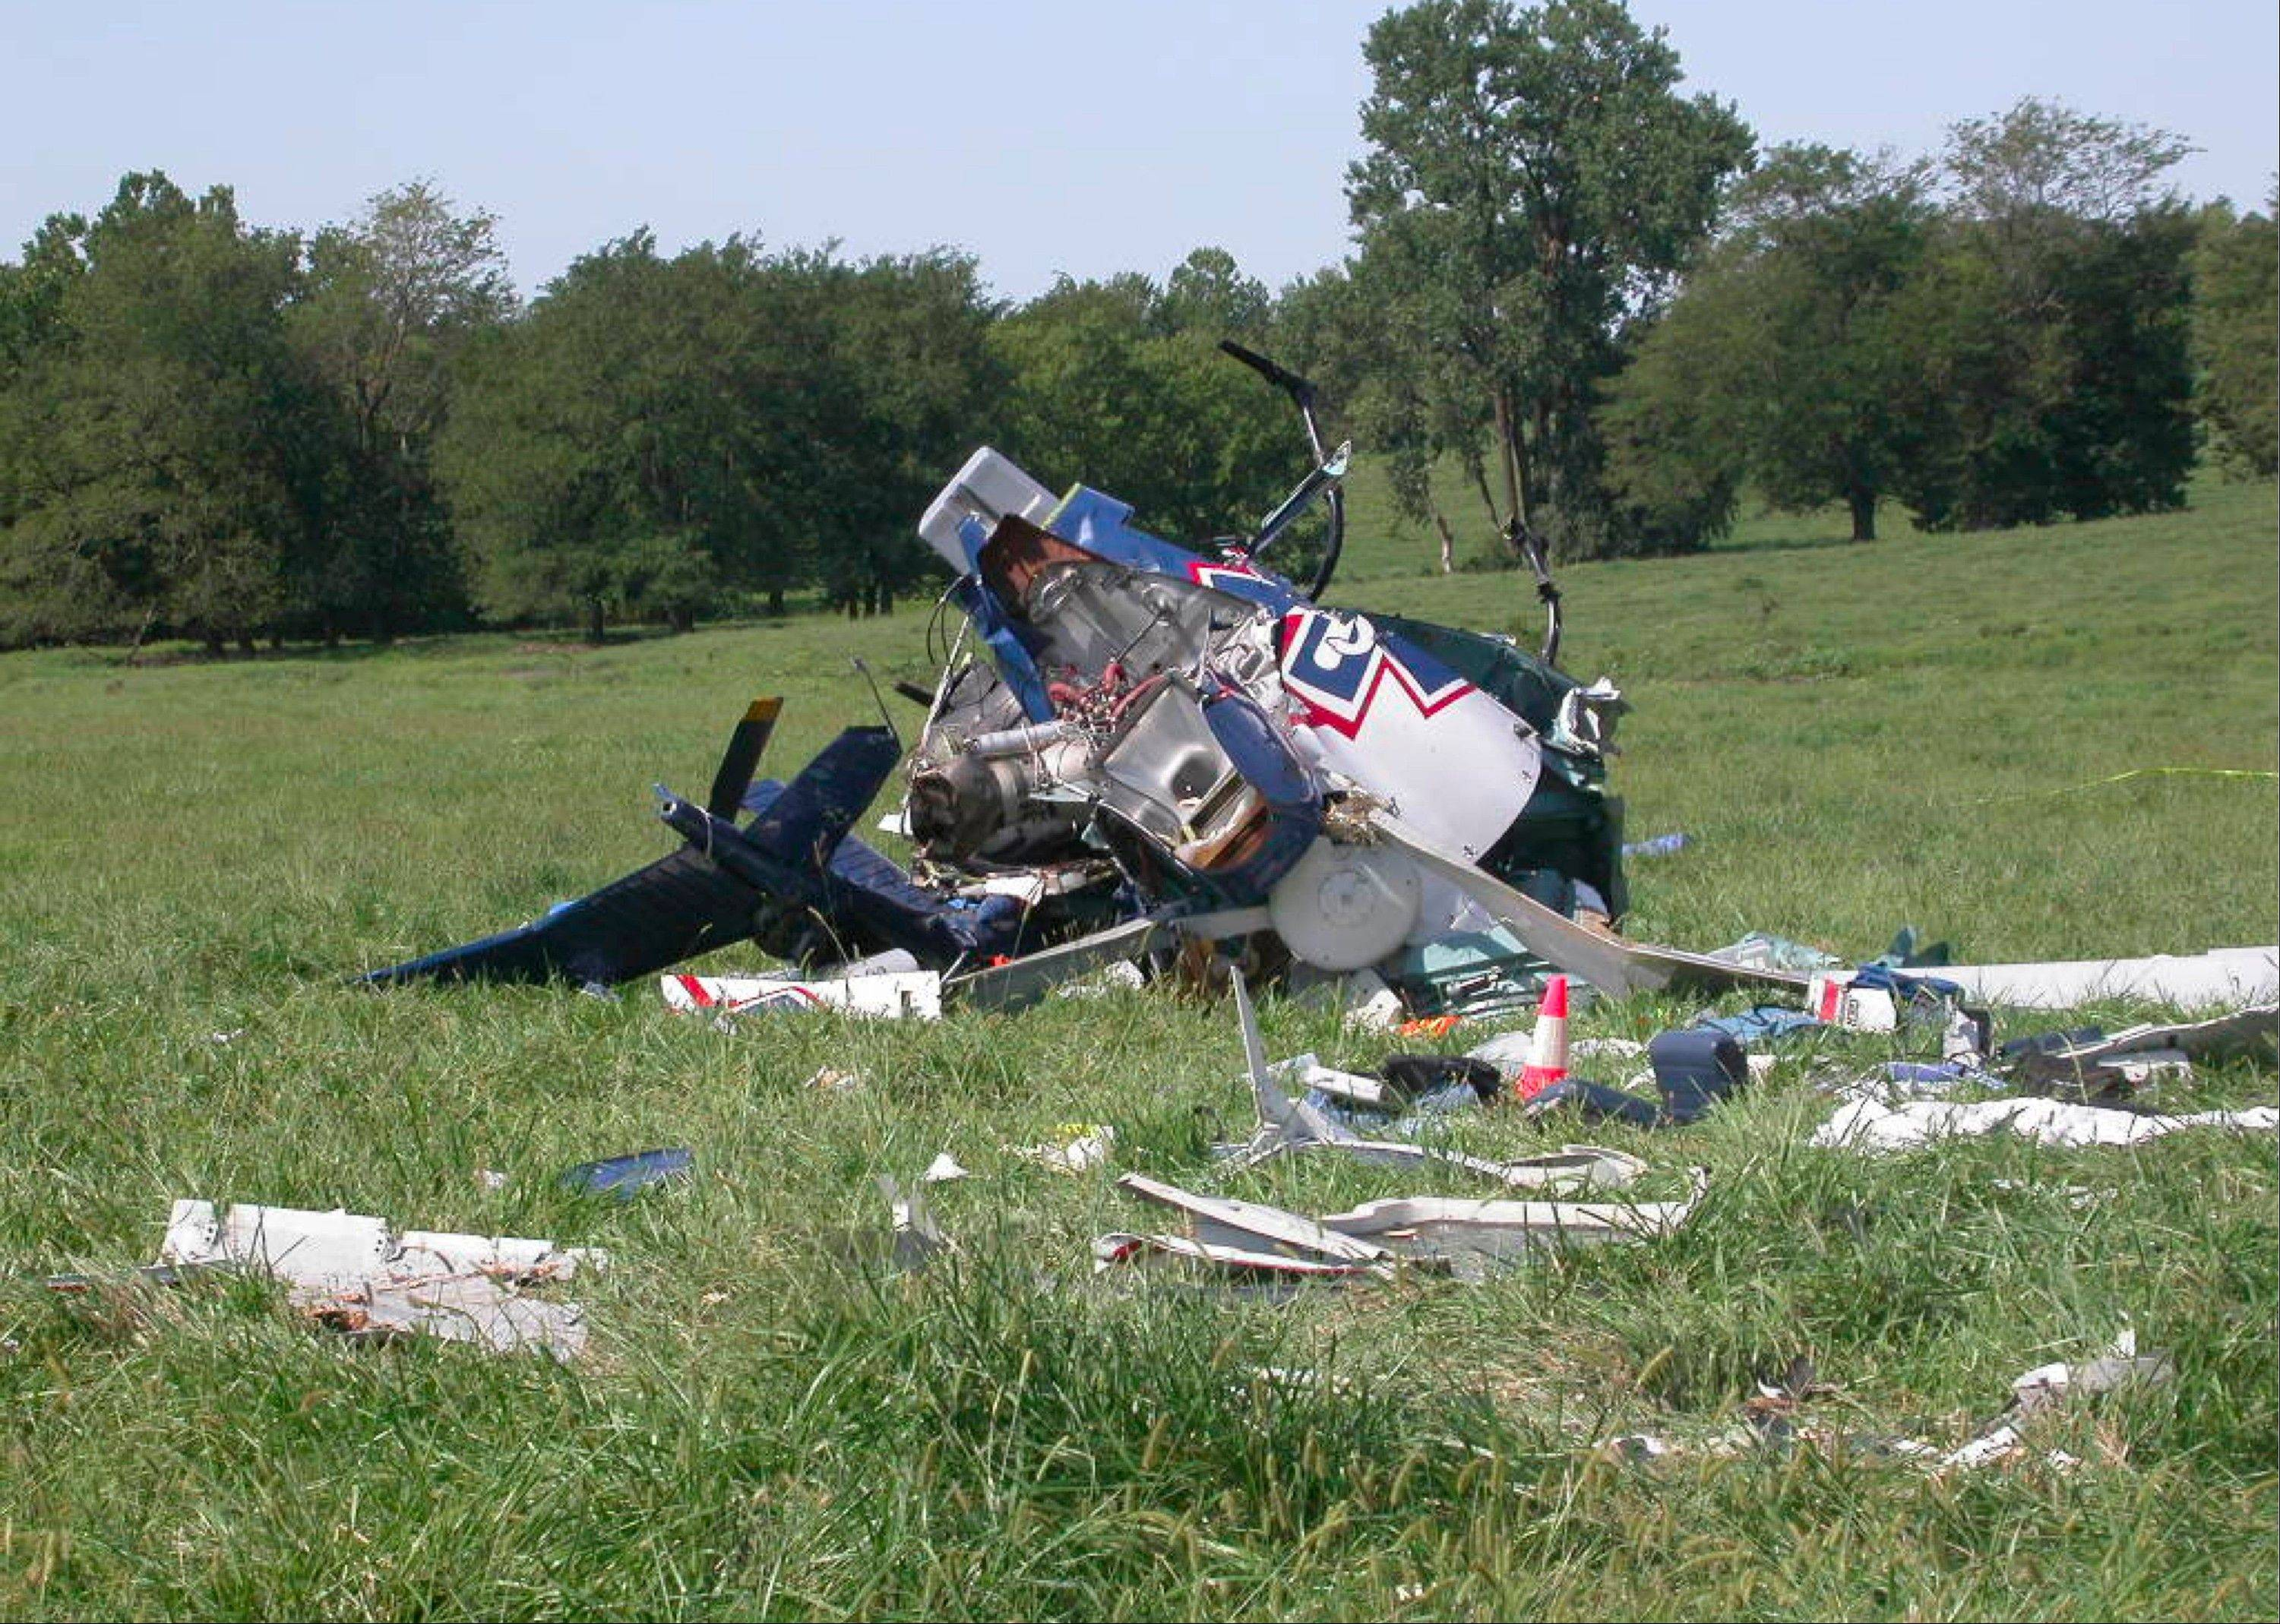 The wreckage of a helicopter that crashed near Mosby, Mo., on Aug. 26, 2011. The pilot of an emergency medical helicopter may have been distracted by text messages when he failed to refuel his helicopter and misjudged how far he could fly before running out of fuel.